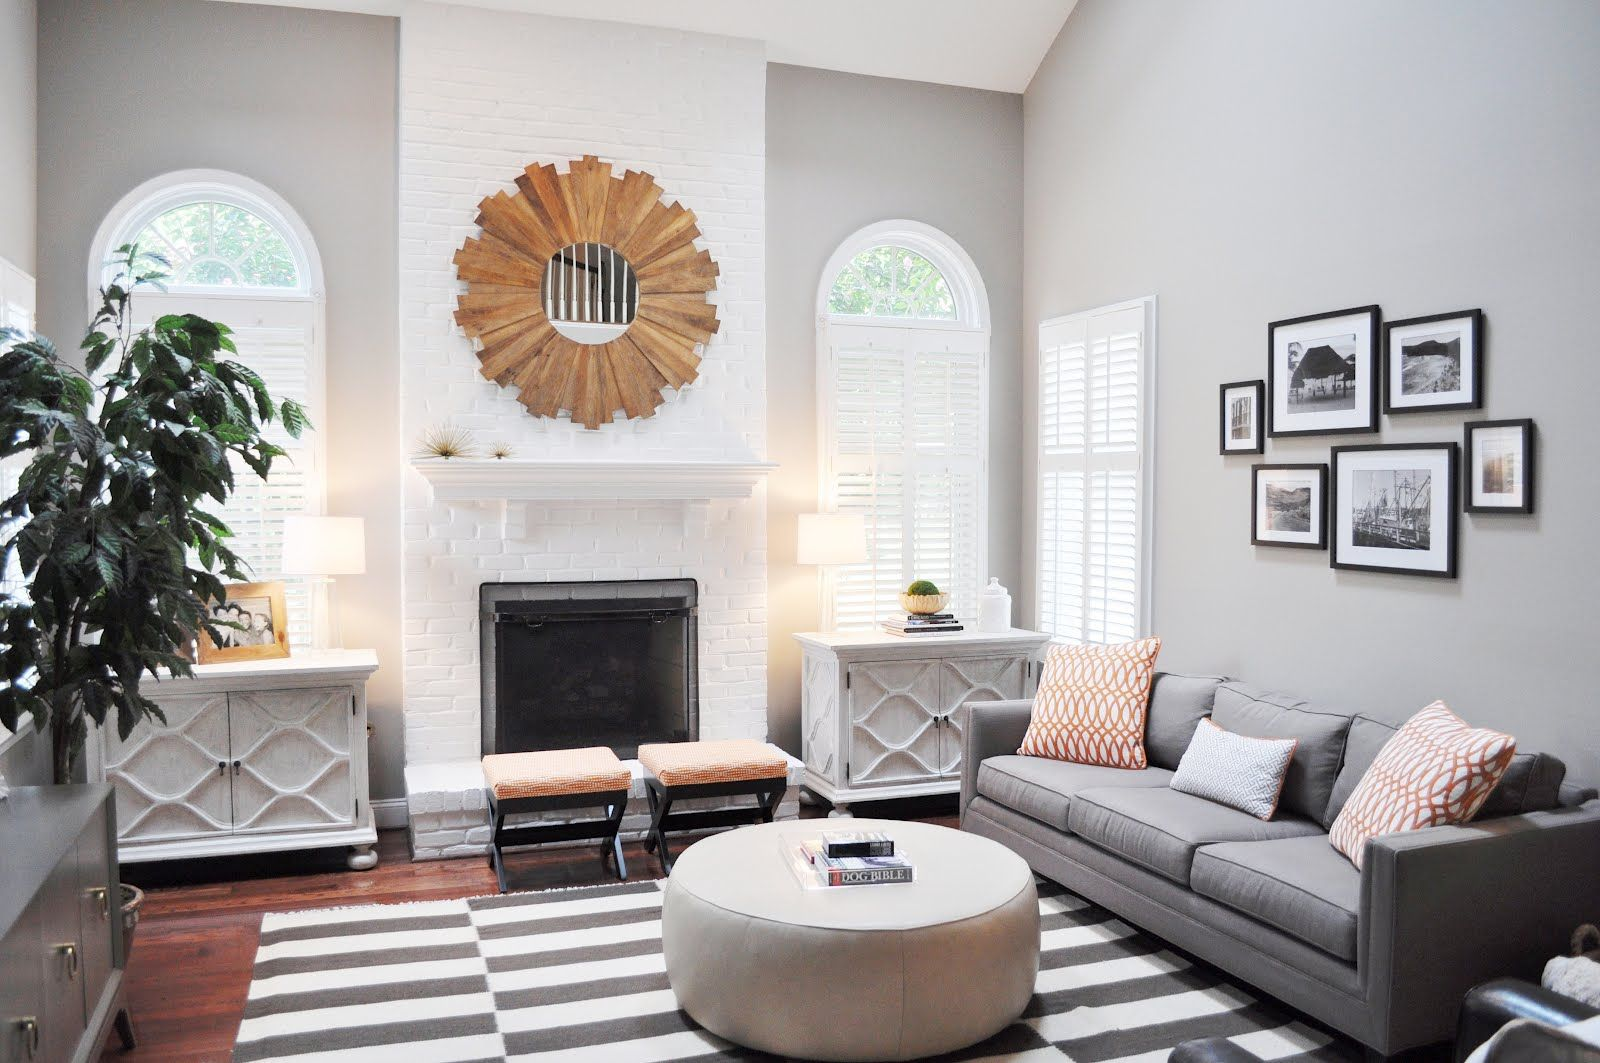 50 Shades of Gray Paint | Living room white, Living rooms and Room